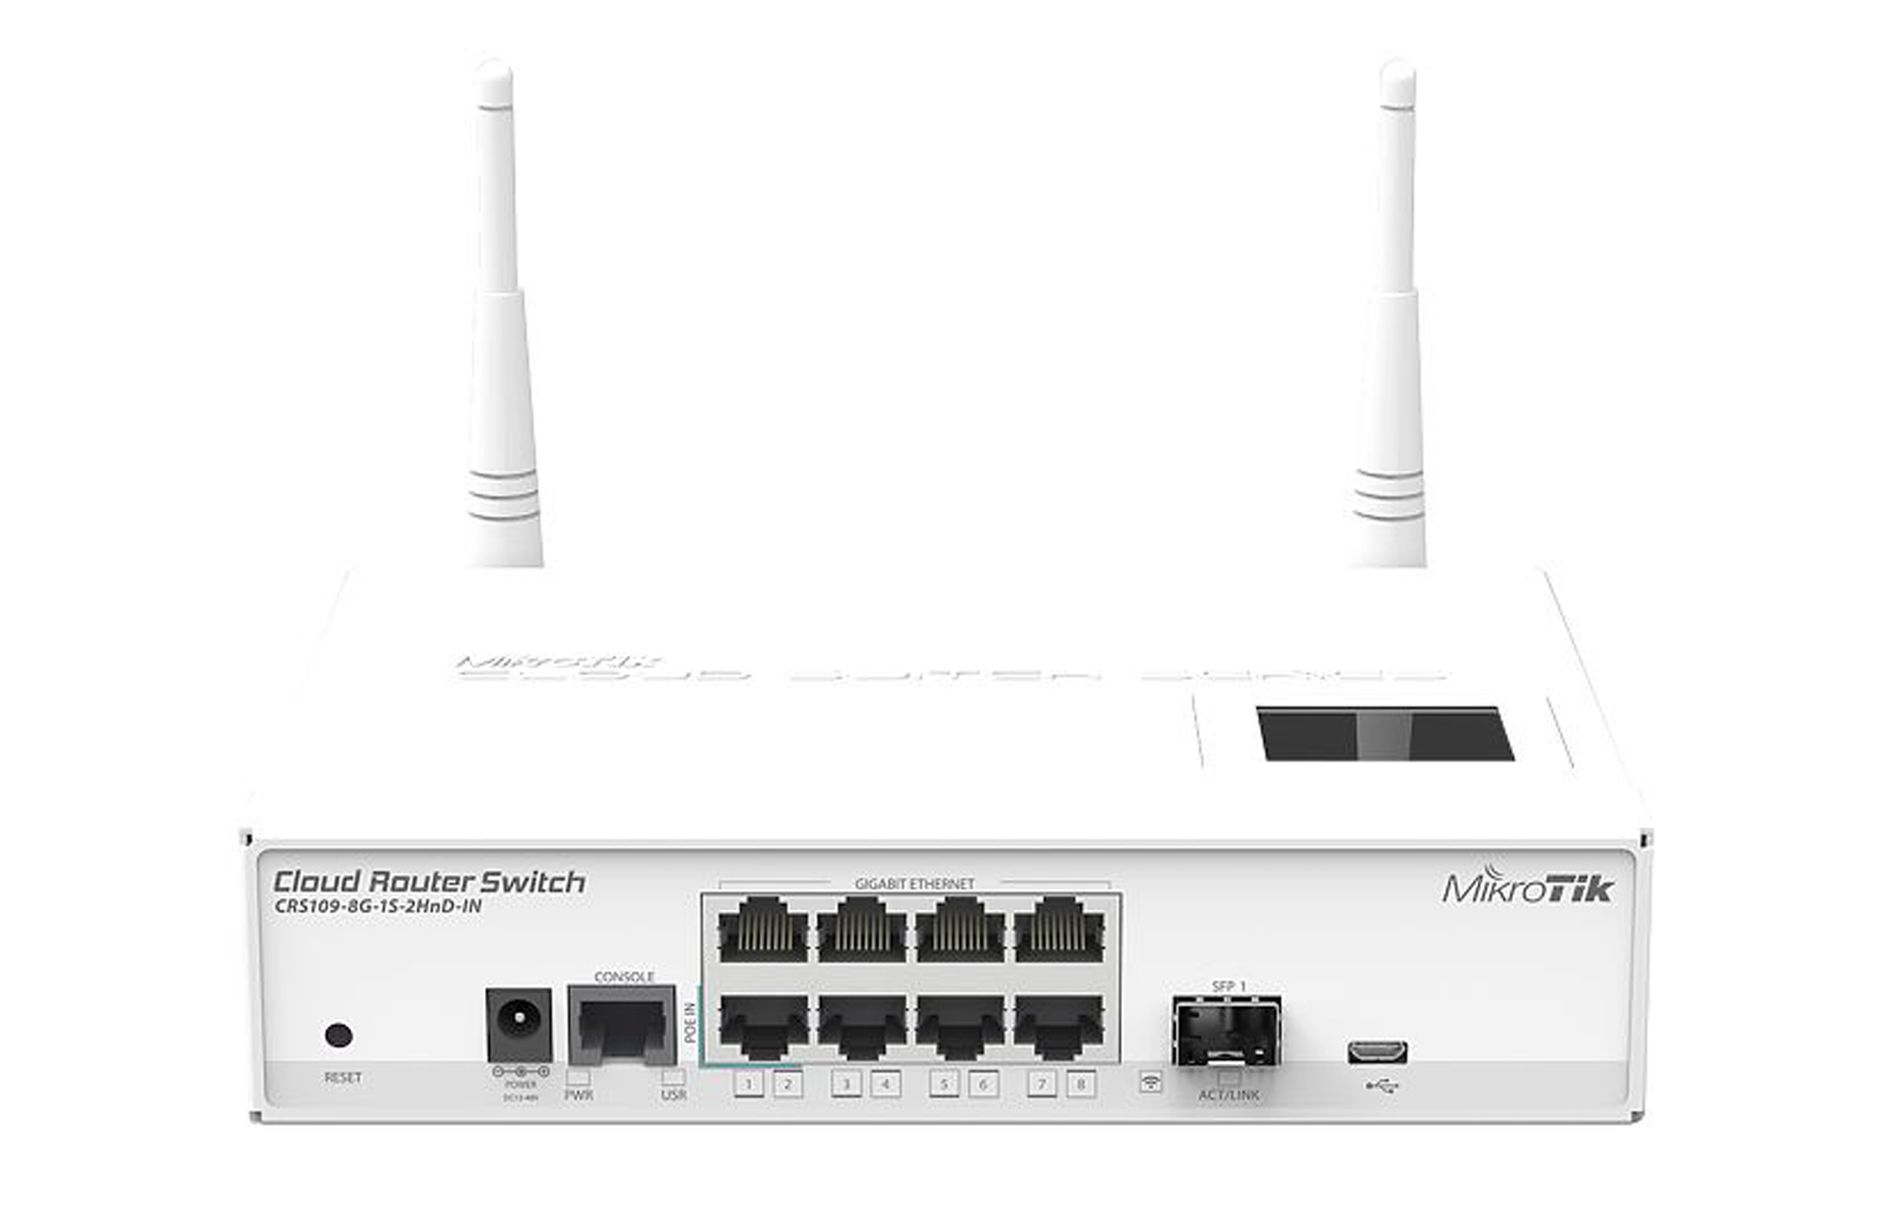 Mikrotik Cloud Router Switch Crs109 8g 1s 2hnd In Rb2011uias Rm